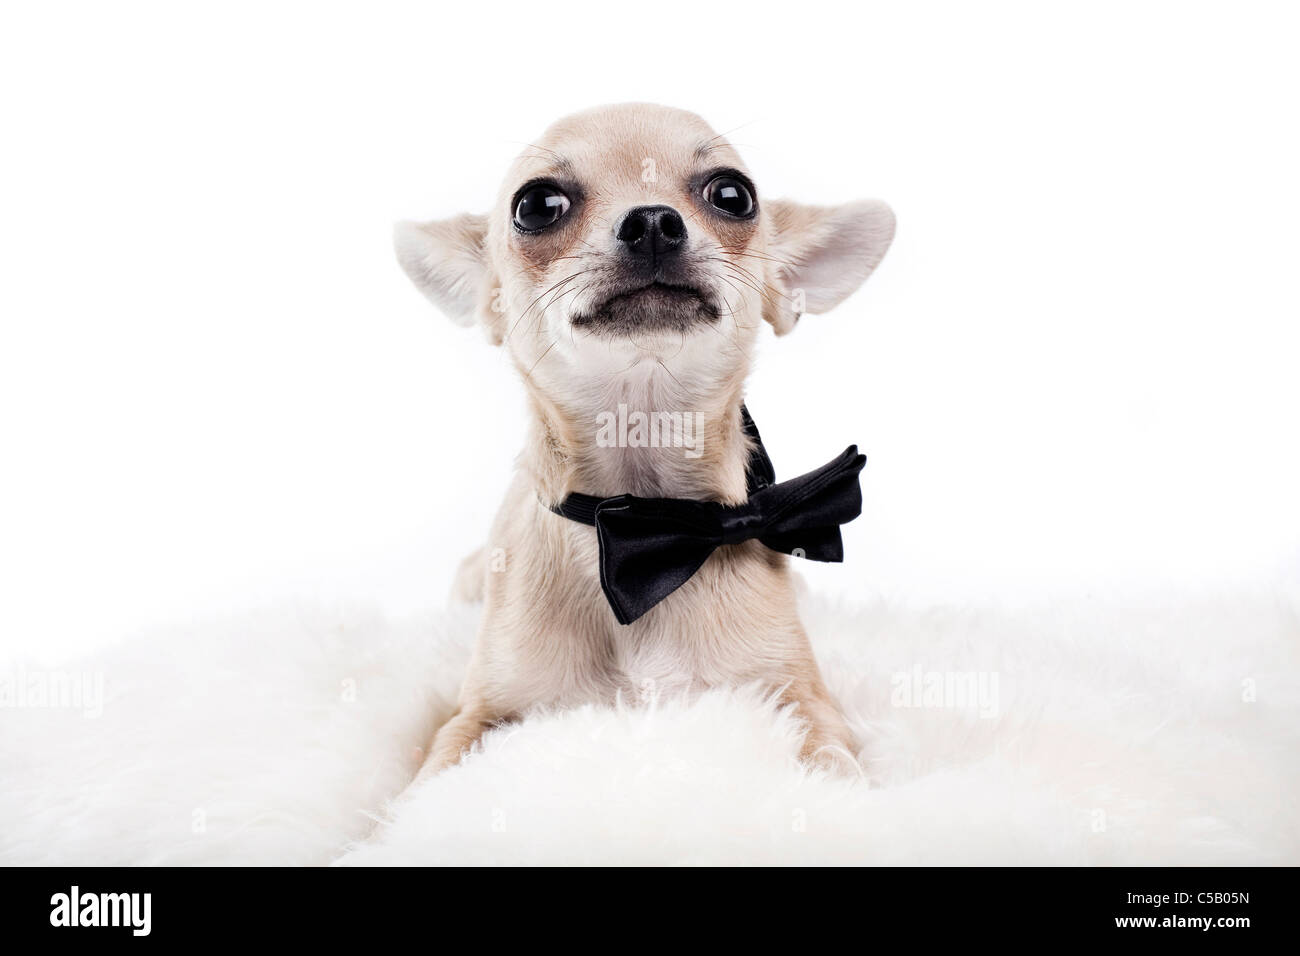 Portrait of cute Chihuahua with eyes wide open wearing neck tie against white background - Stock Image